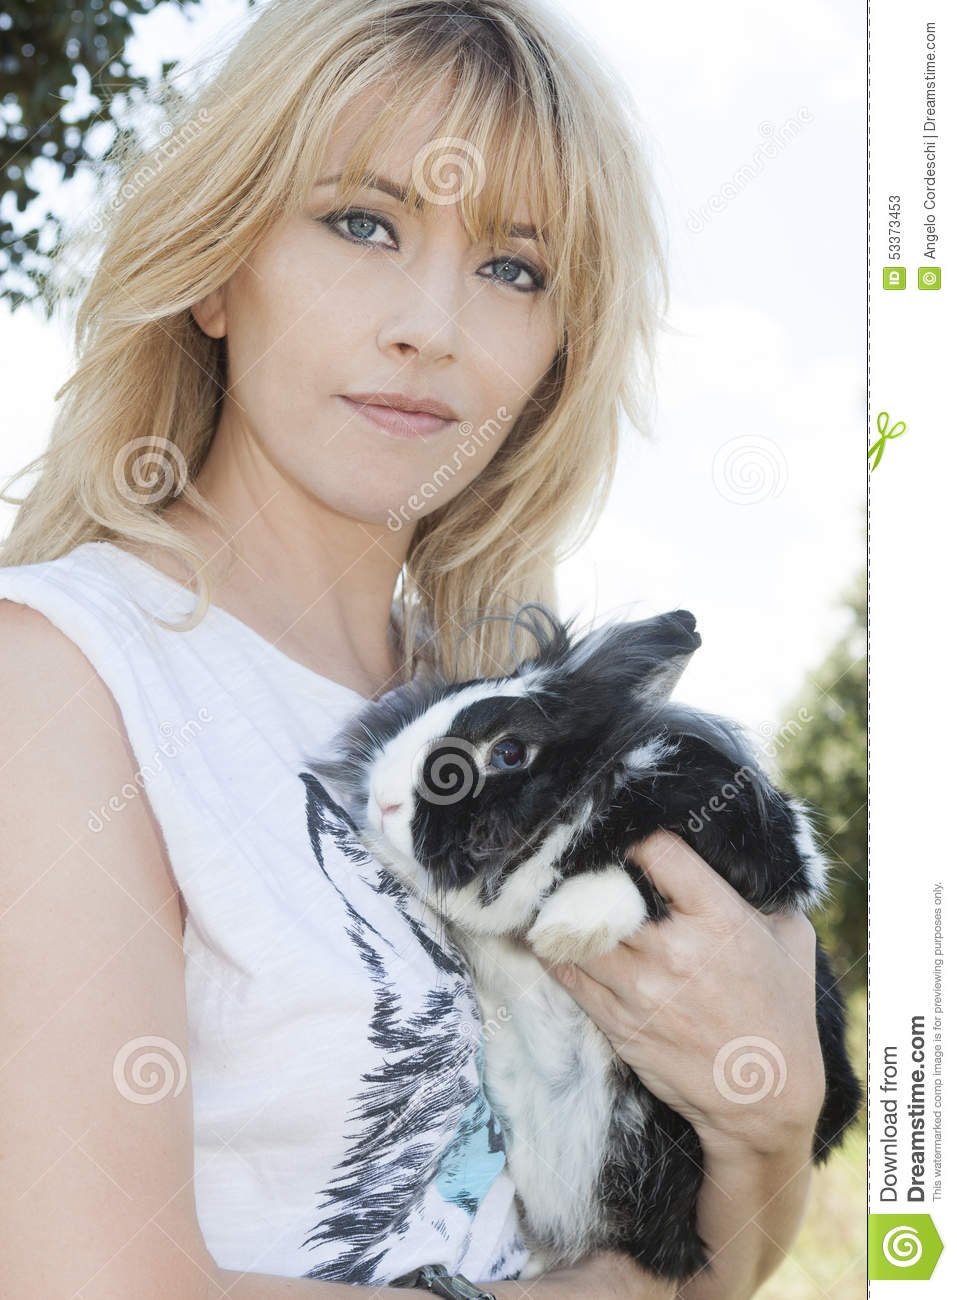 Blonde Woman With Rabbit Bunny Stock Photo Image 53373453